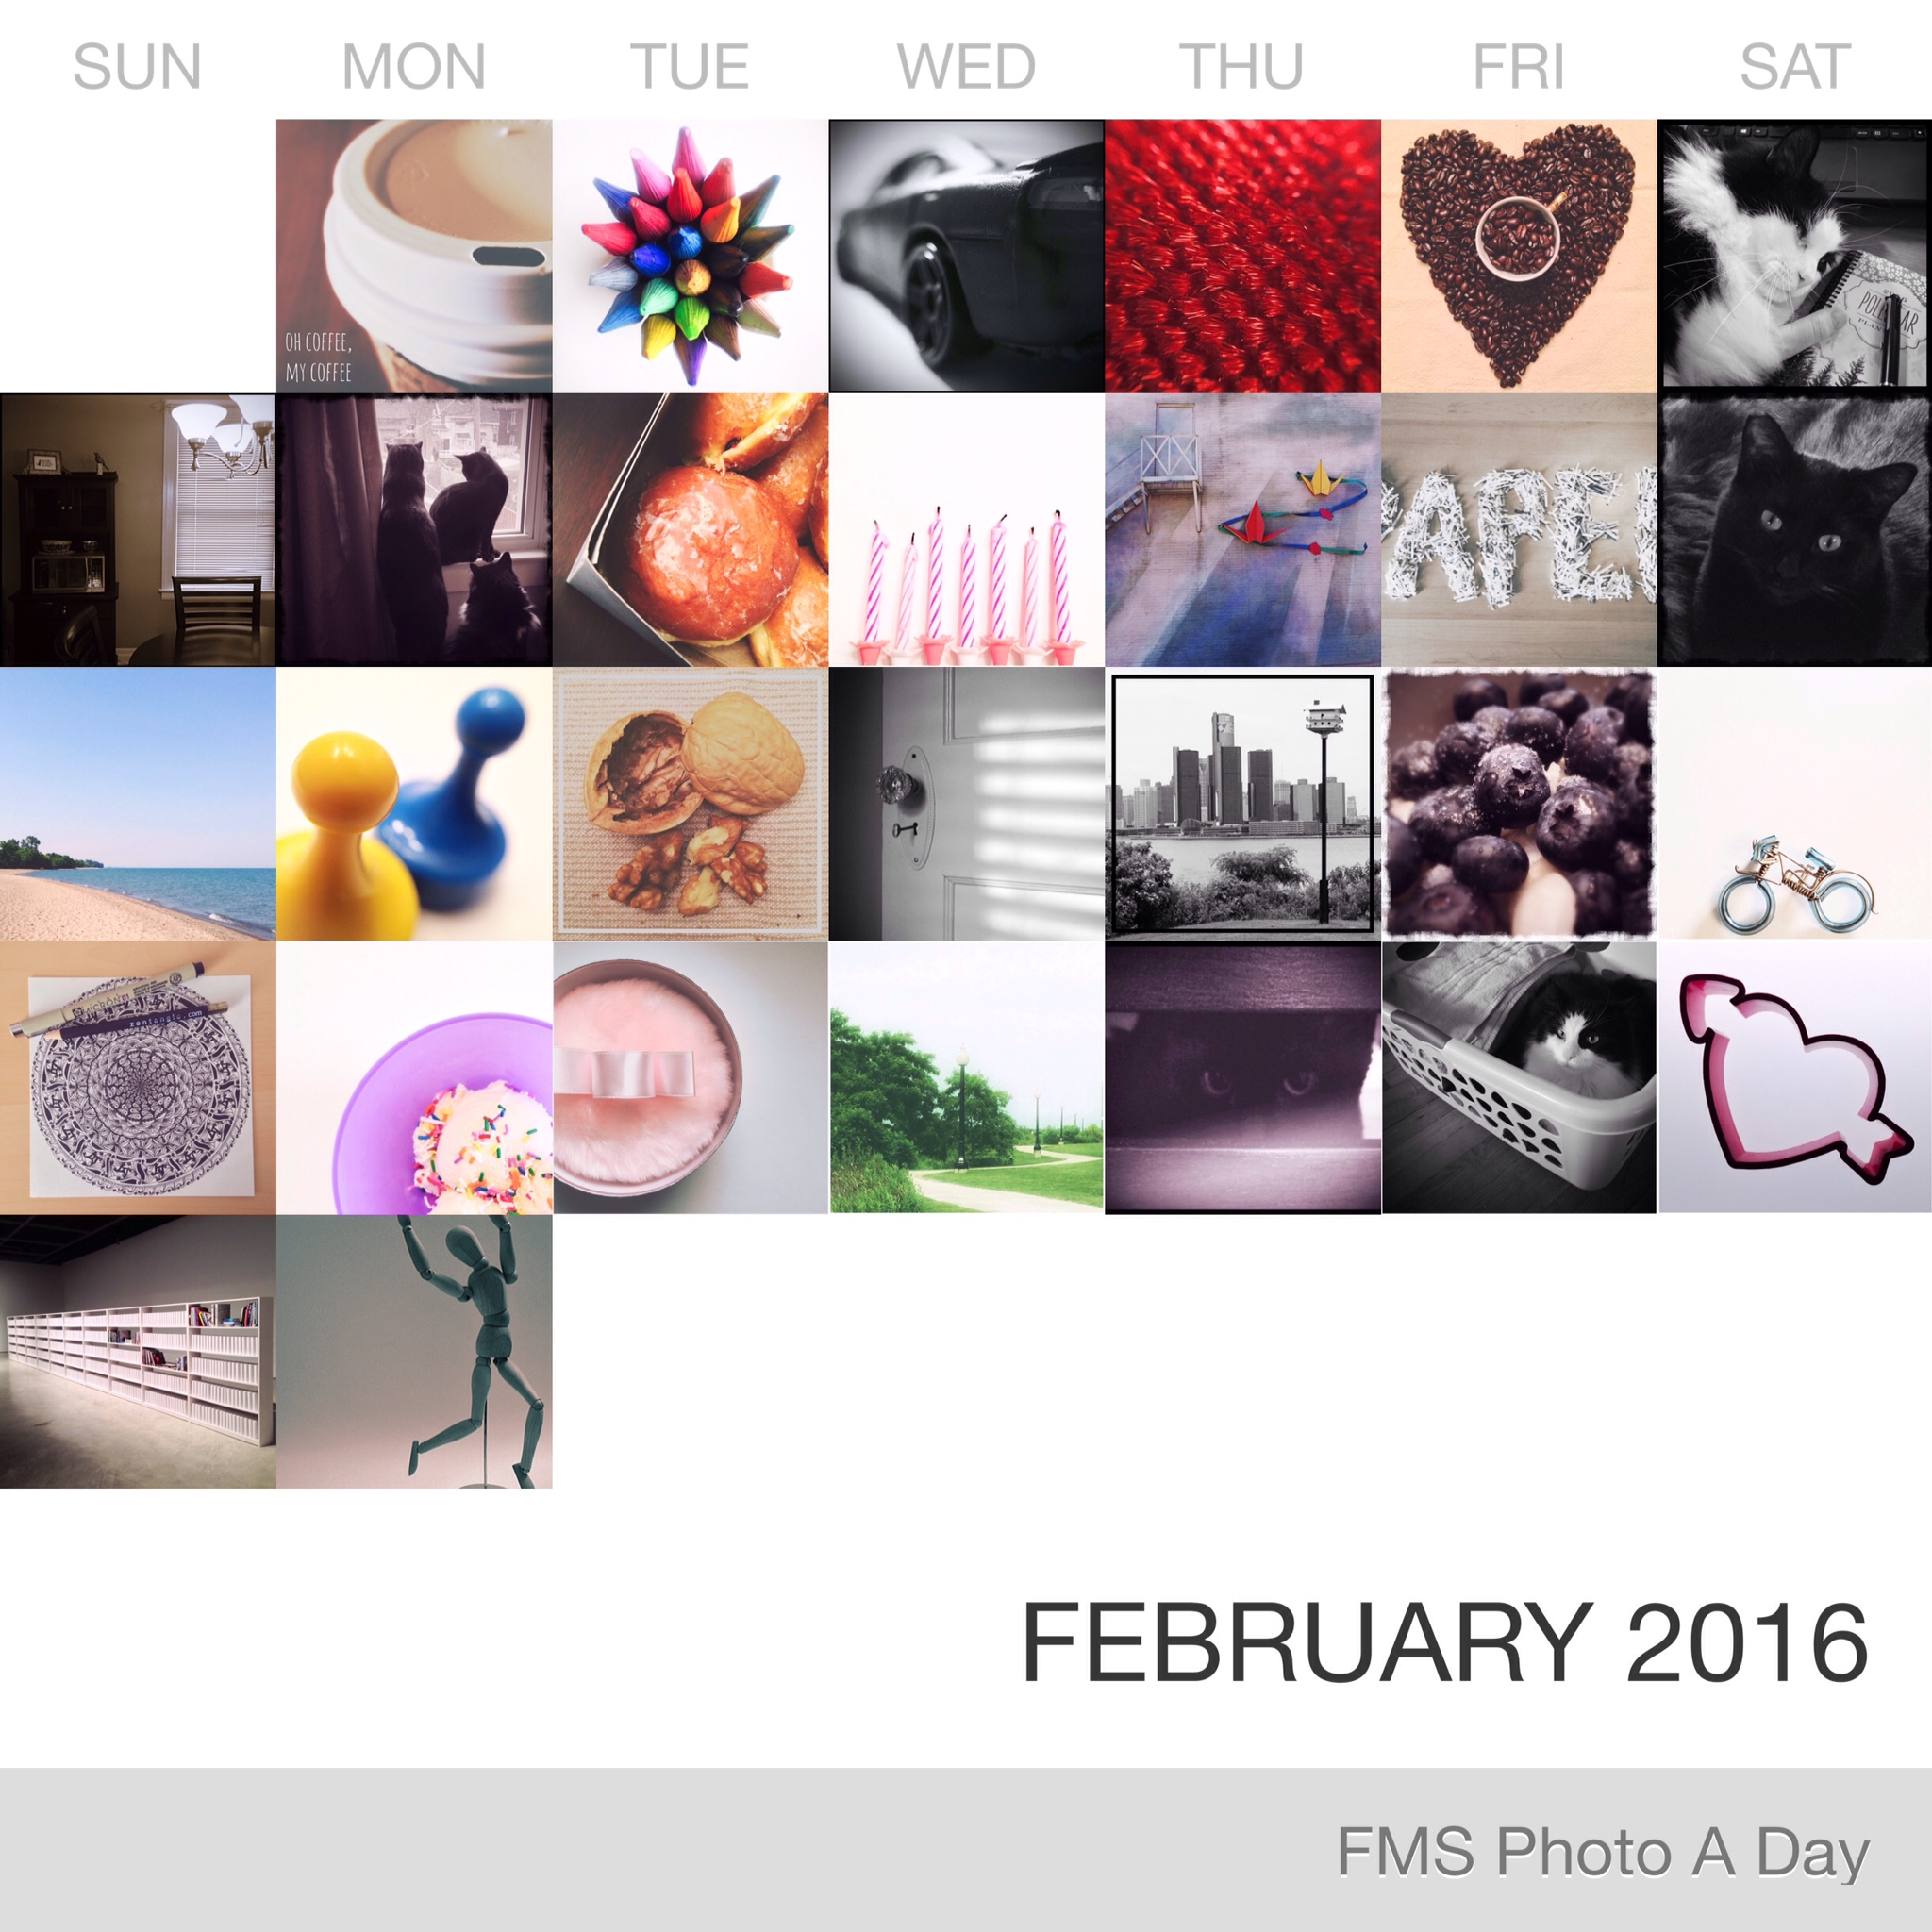 FMS Photo A Day February 2016